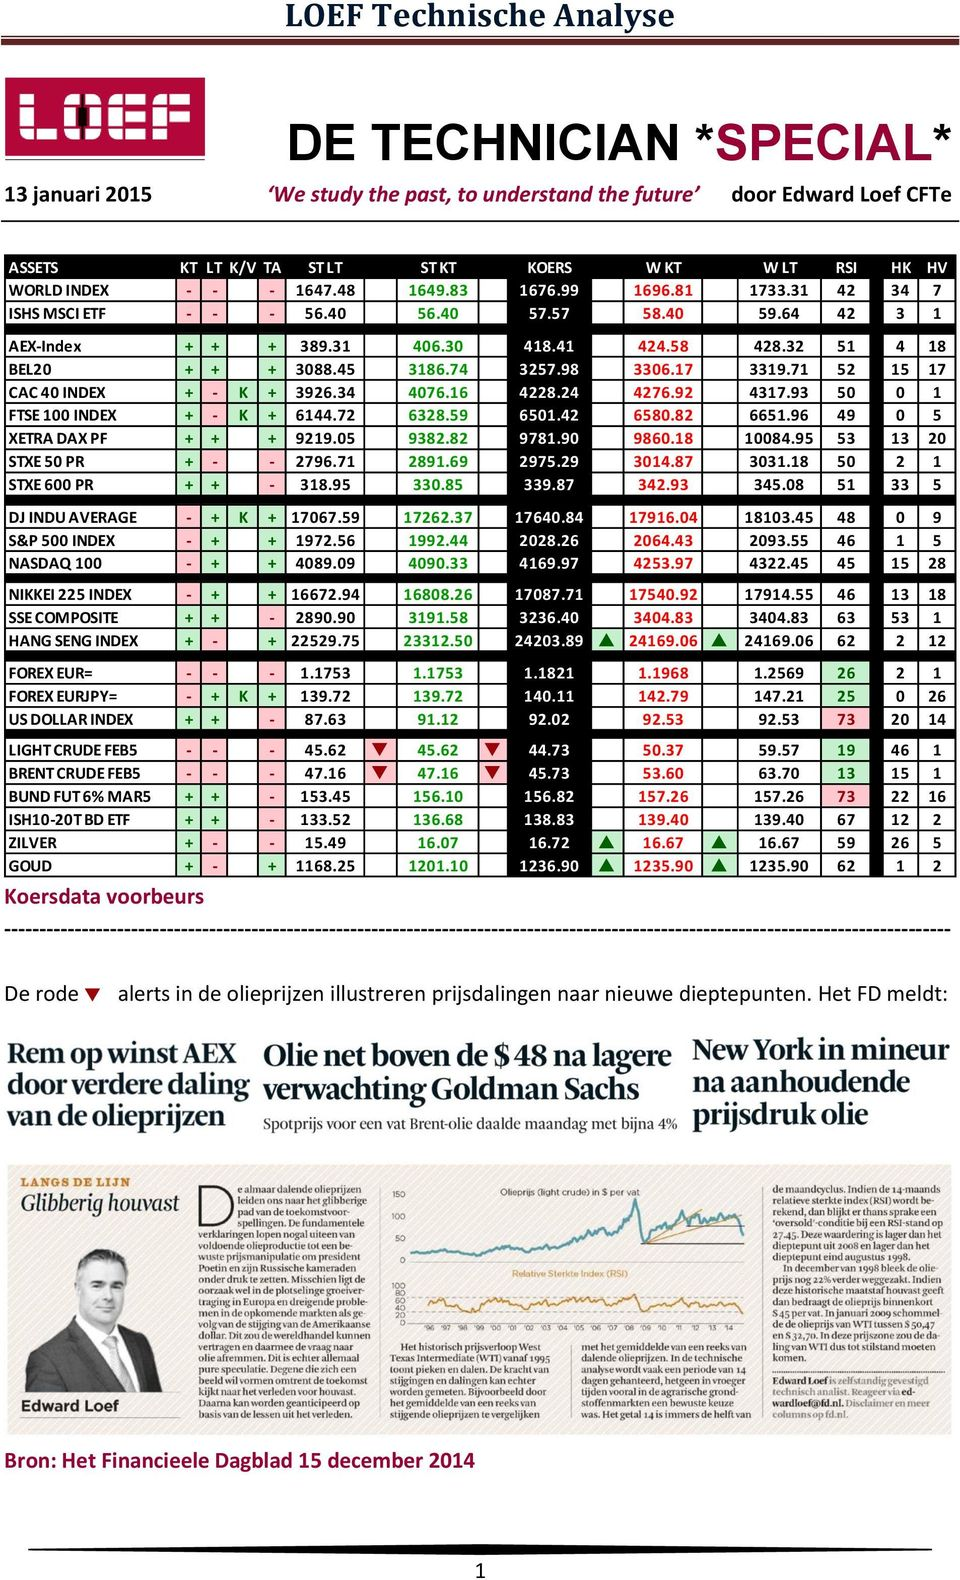 71 52 15 17 CAC 40 INDEX + - K + 3926.34 4076.16 4228.24 4276.92 4317.93 50 0 1 FTSE 100 INDEX + - K + 6144.72 6328.59 6501.42 6580.82 6651.96 49 0 5 XETRA DAX PF + + + 9219.05 9382.82 9781.90 9860.